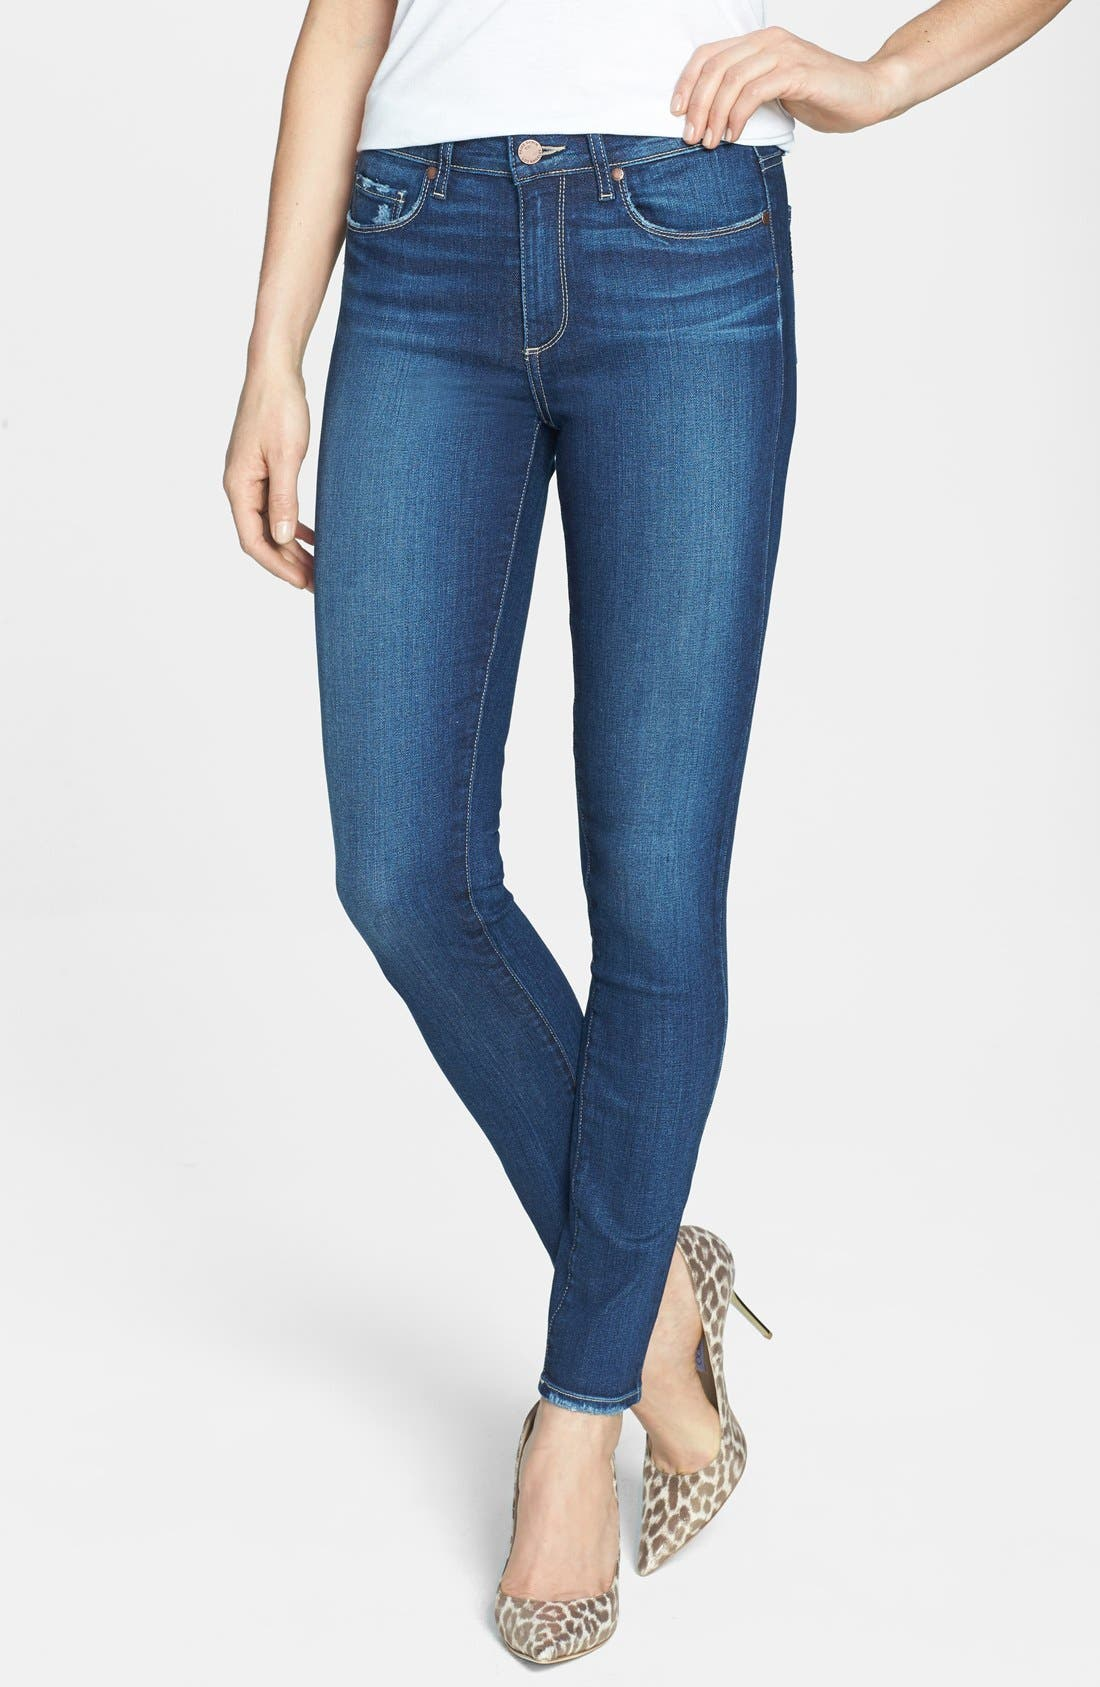 Alternate Image 1 Selected - PAIGE 'Hoxton' High Rise Skinny Jeans (Woodrow)